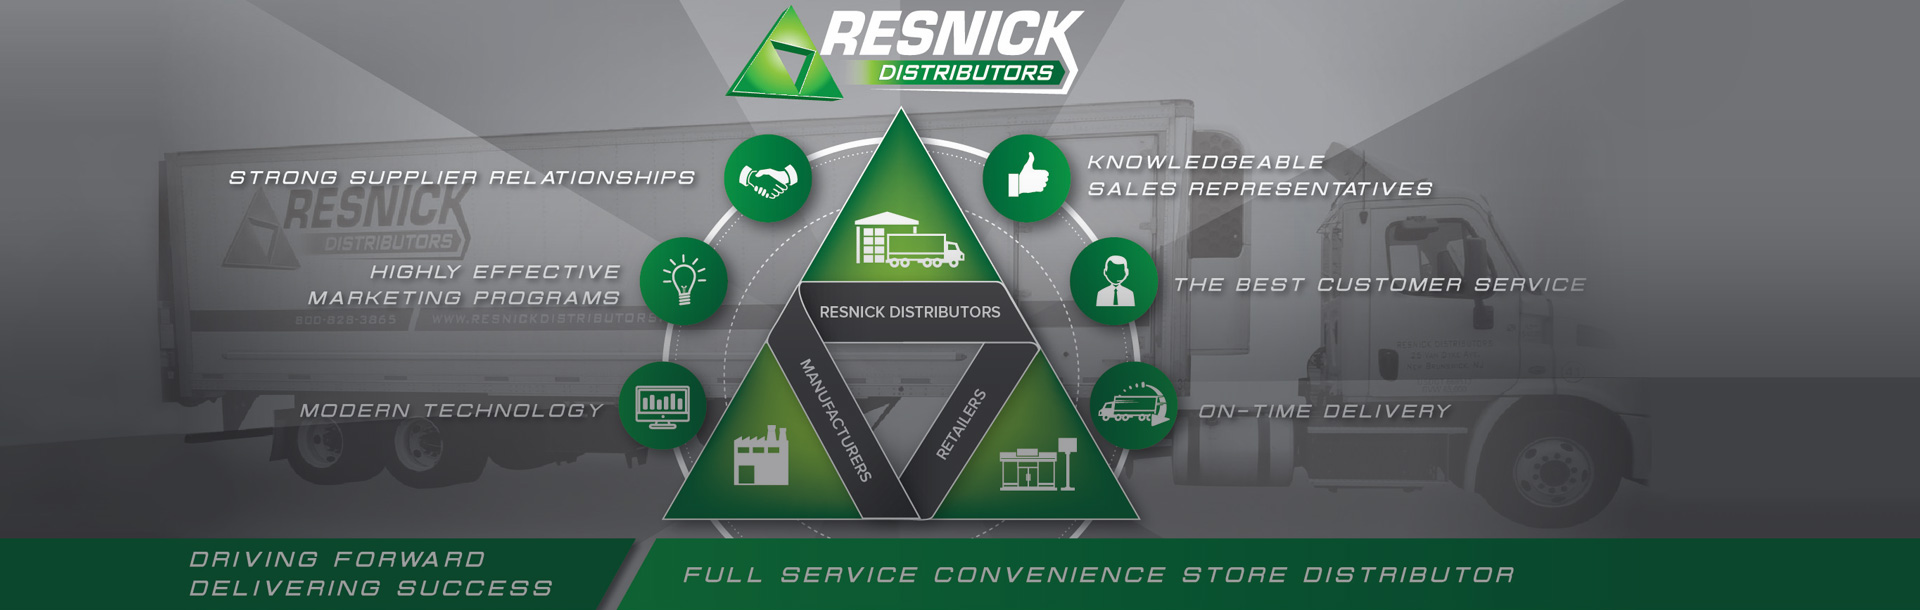 Resnick Full Service Offerings